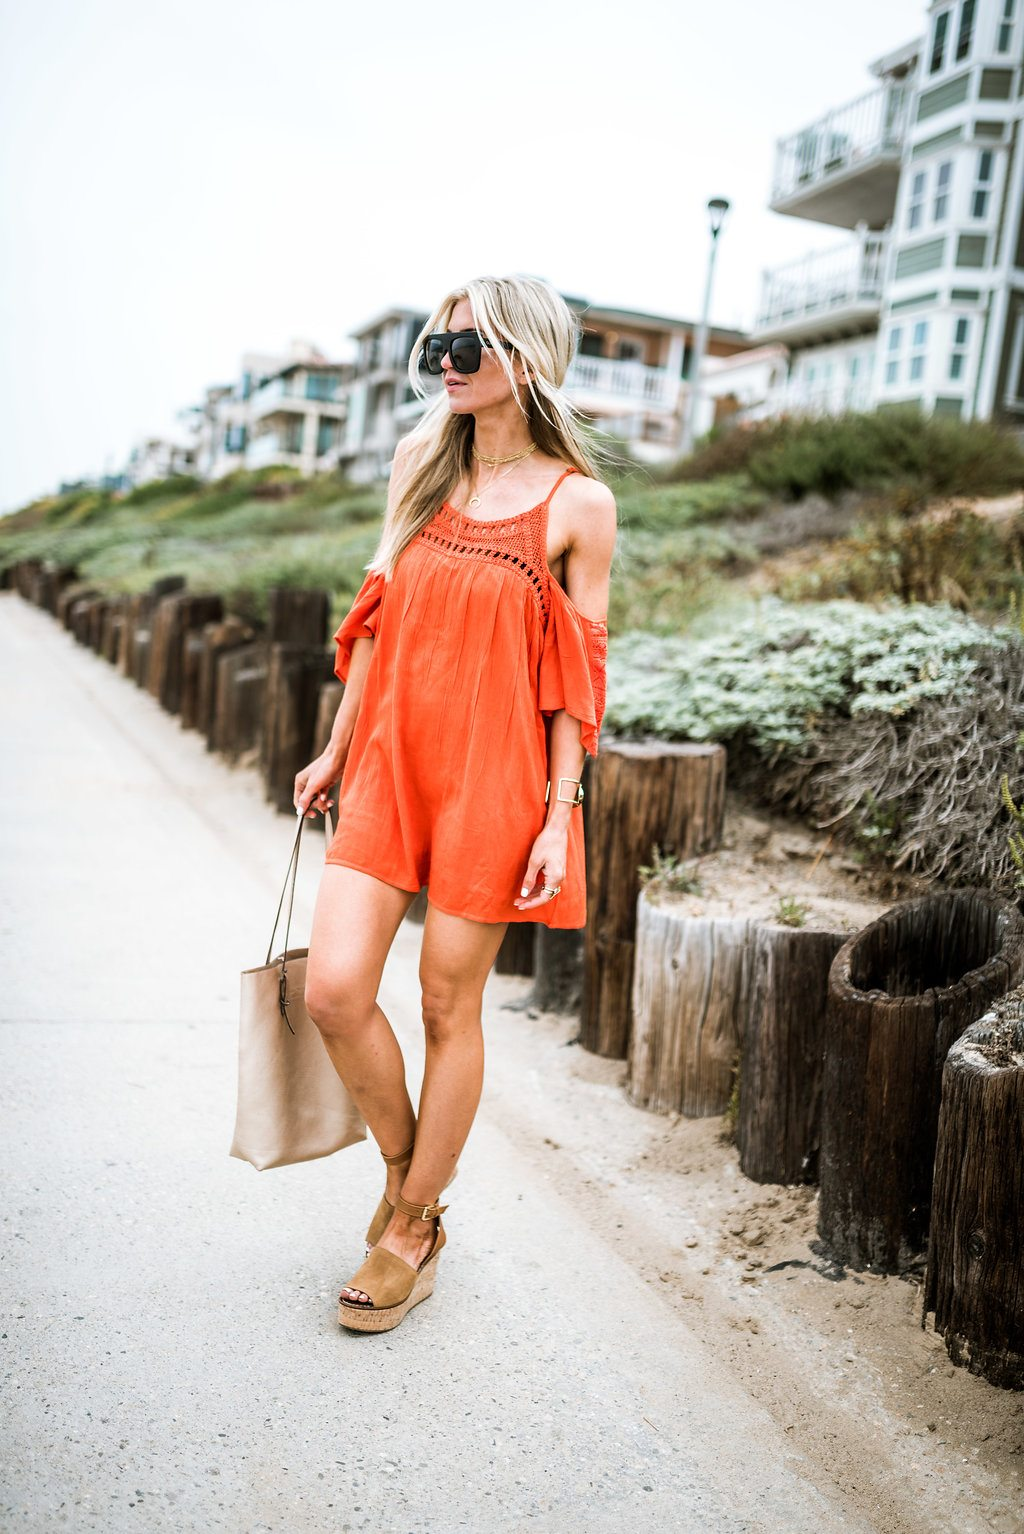 2017 Swimsuit Cover-up Trends